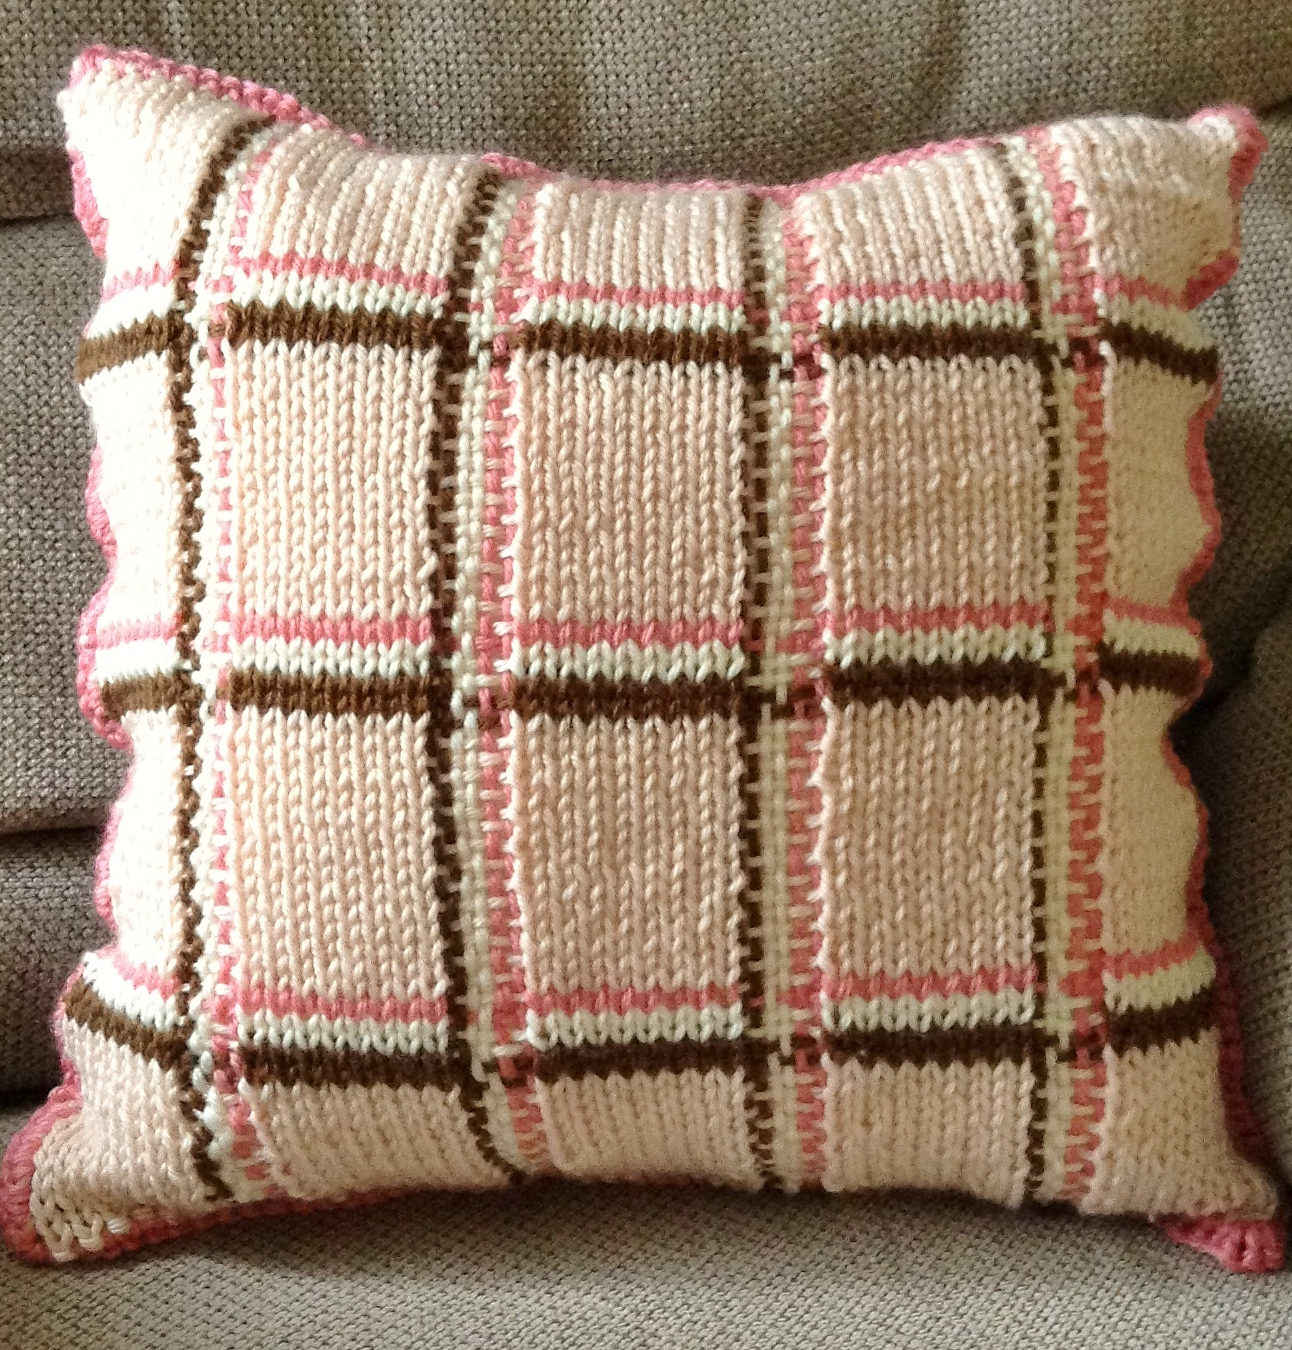 Free Cushion Cover Knitting Pattern Plaid Knitting Patterns In The Loop Knitting